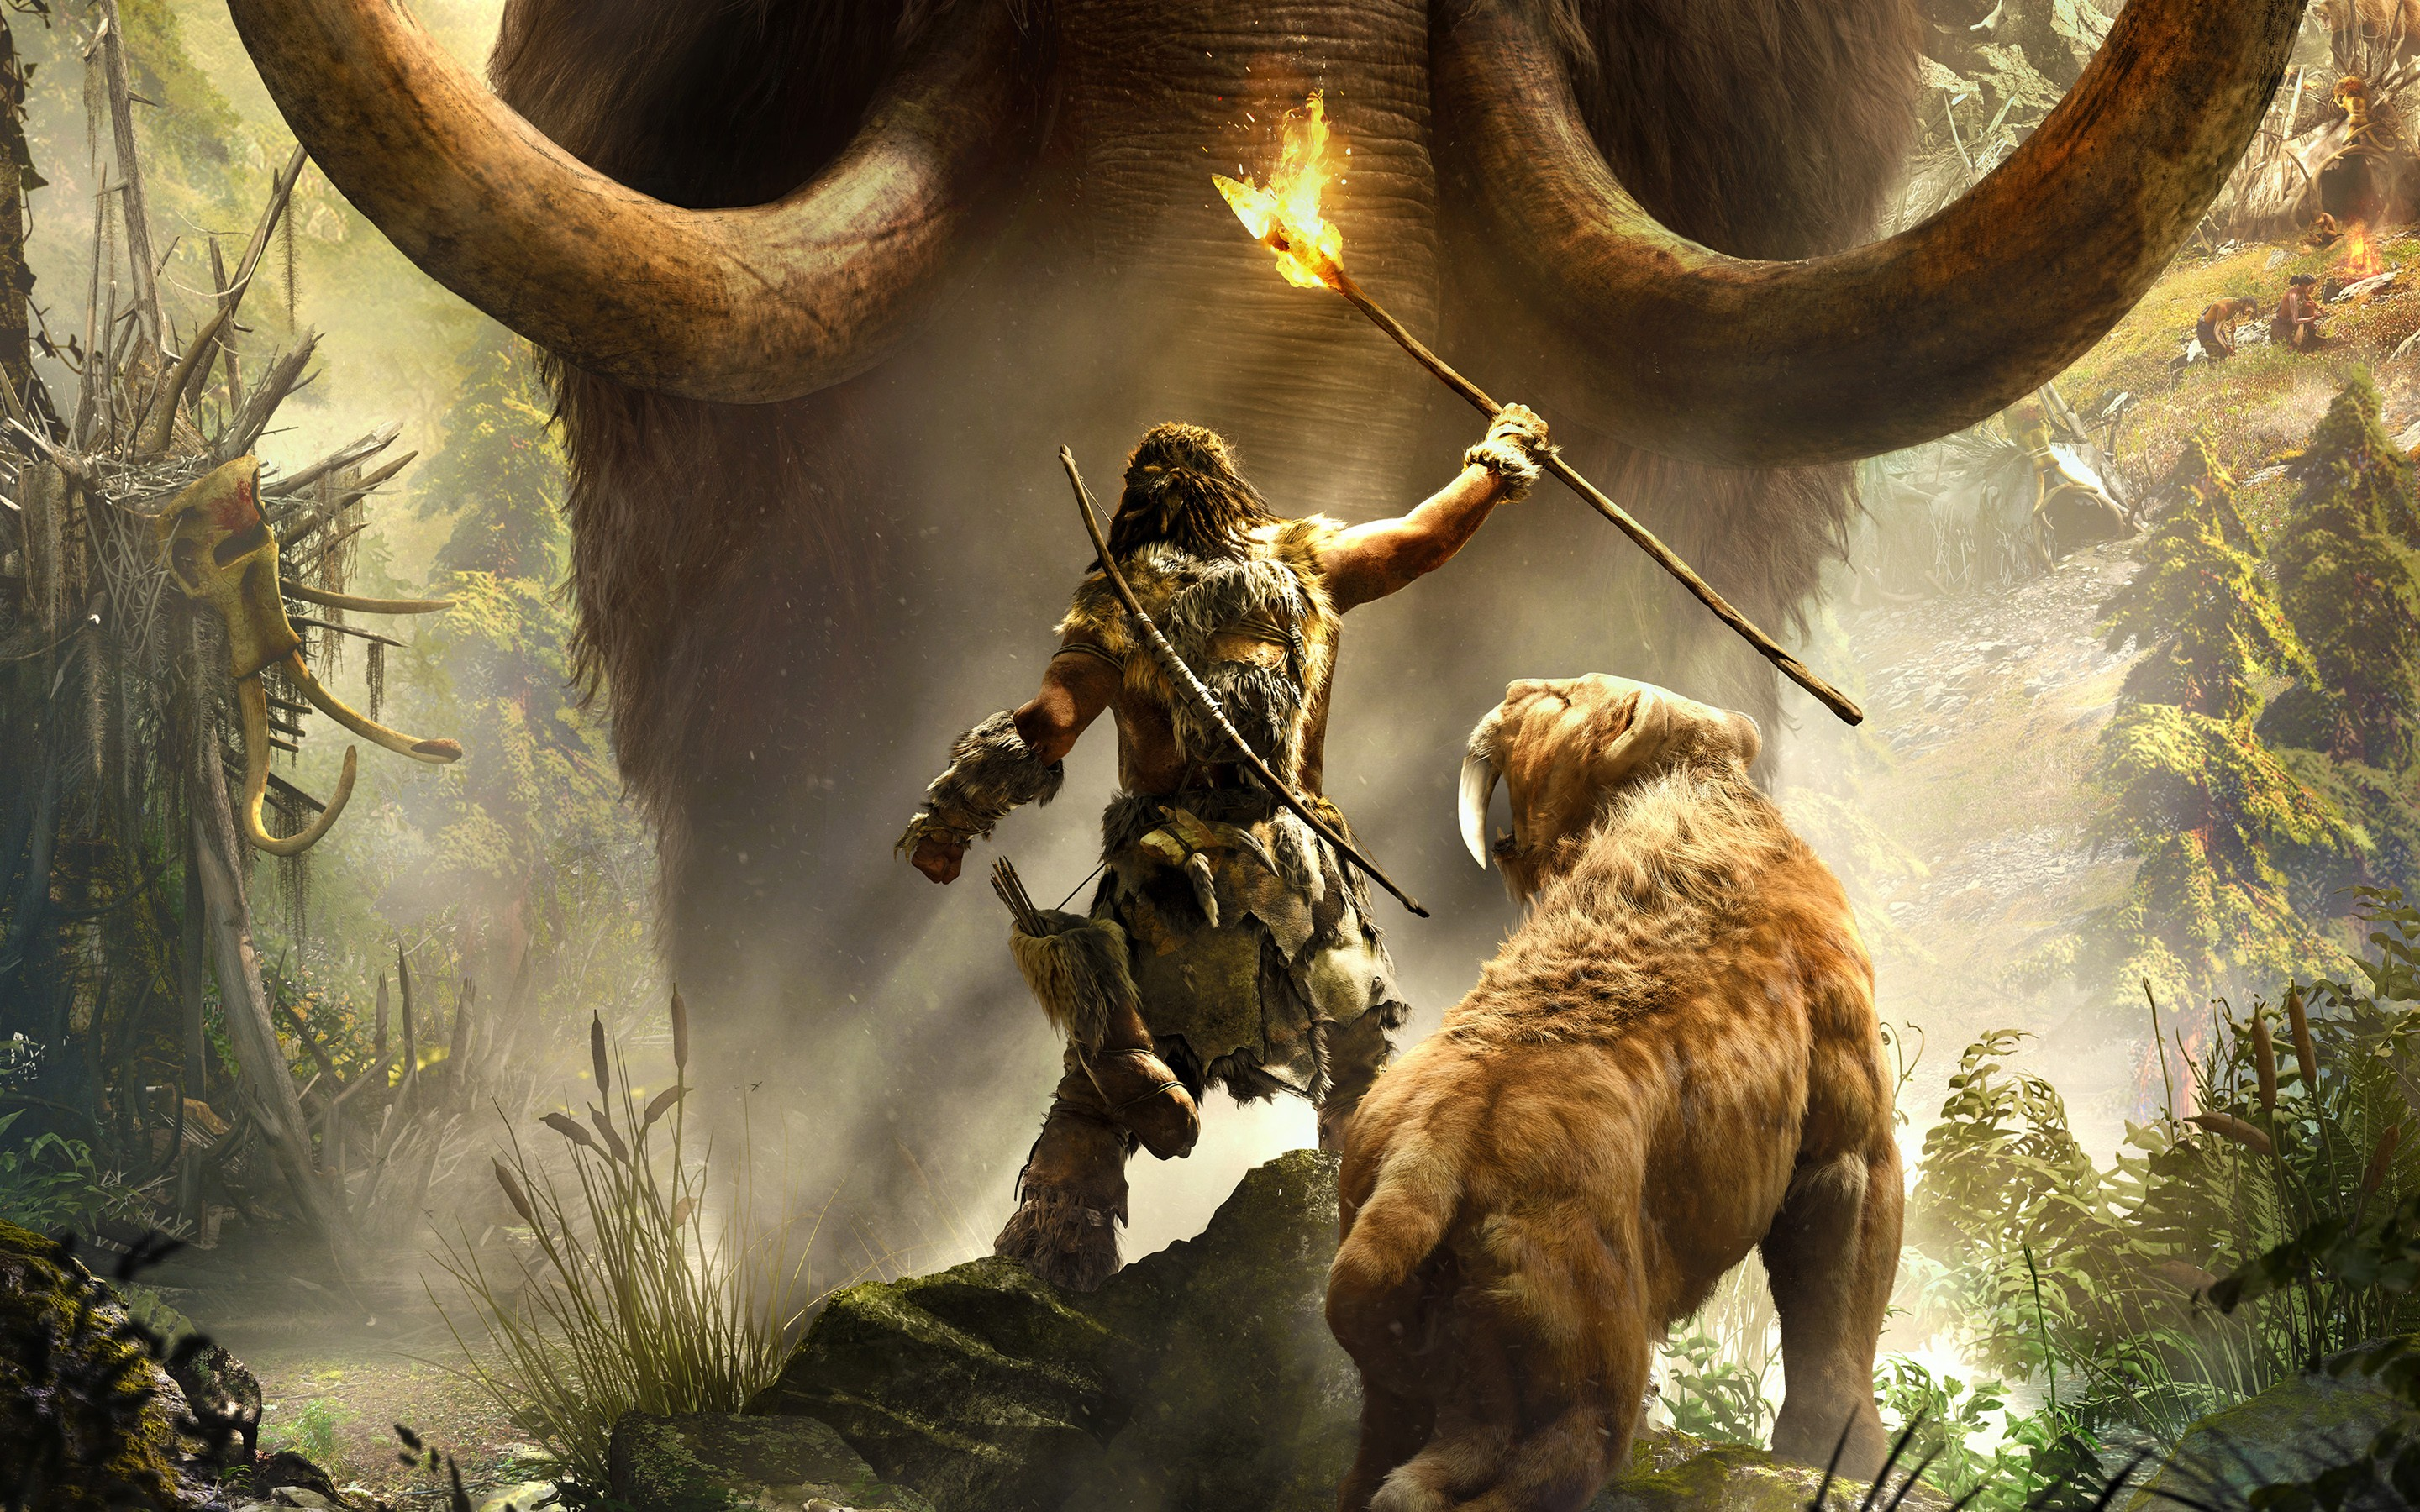 1920x1200 Far Cry Primal 1080p Resolution Hd 4k Wallpapers Images